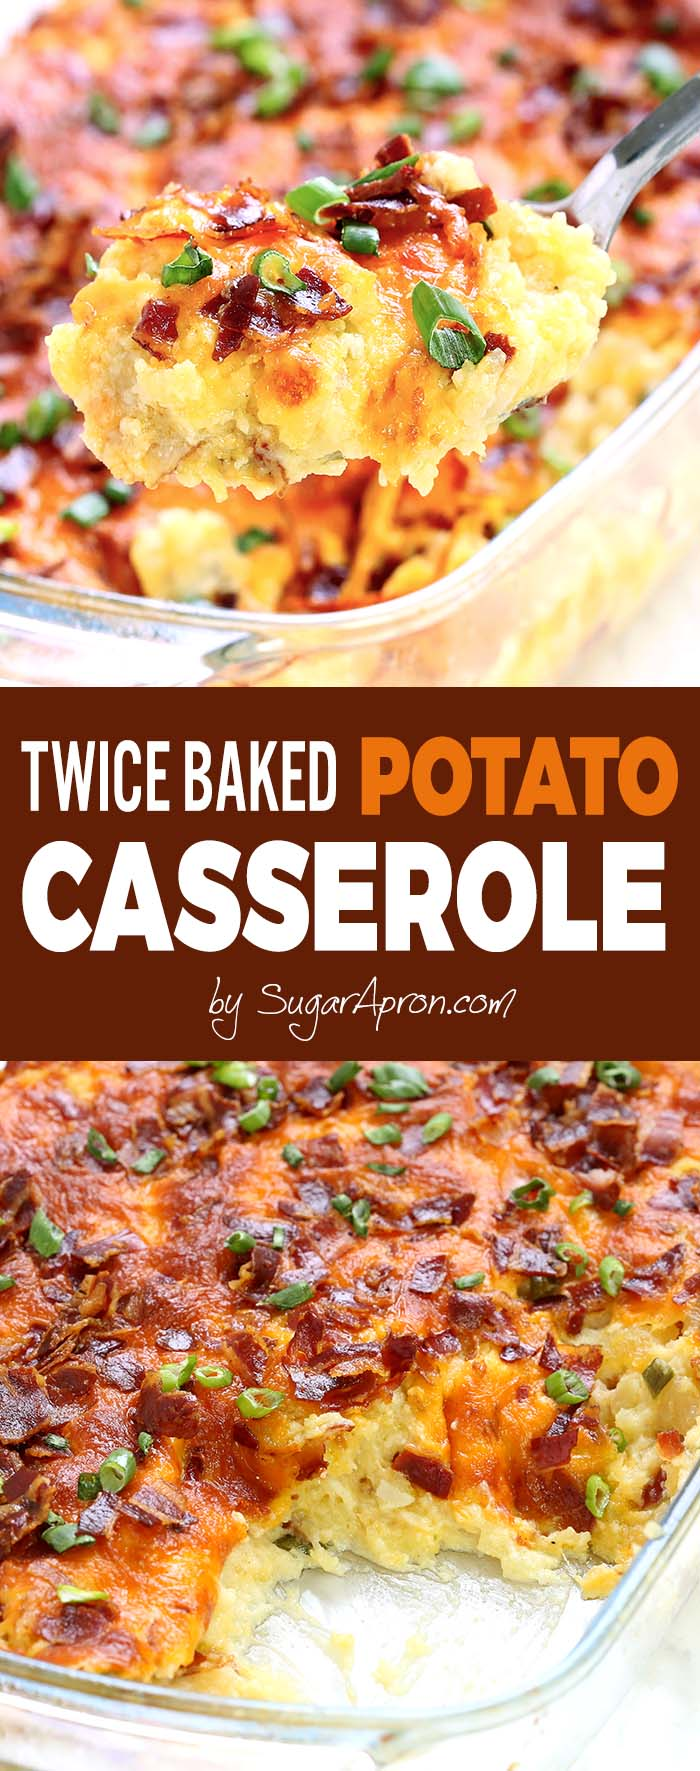 If you've been looking for the ultimate comfort food, look no further, because Twice Baked Potato Casserole has delivered the perfect combination of flavor and warmth. Just imagine your favorite potatoes being crisp, greasy, cheesy, and bacony.